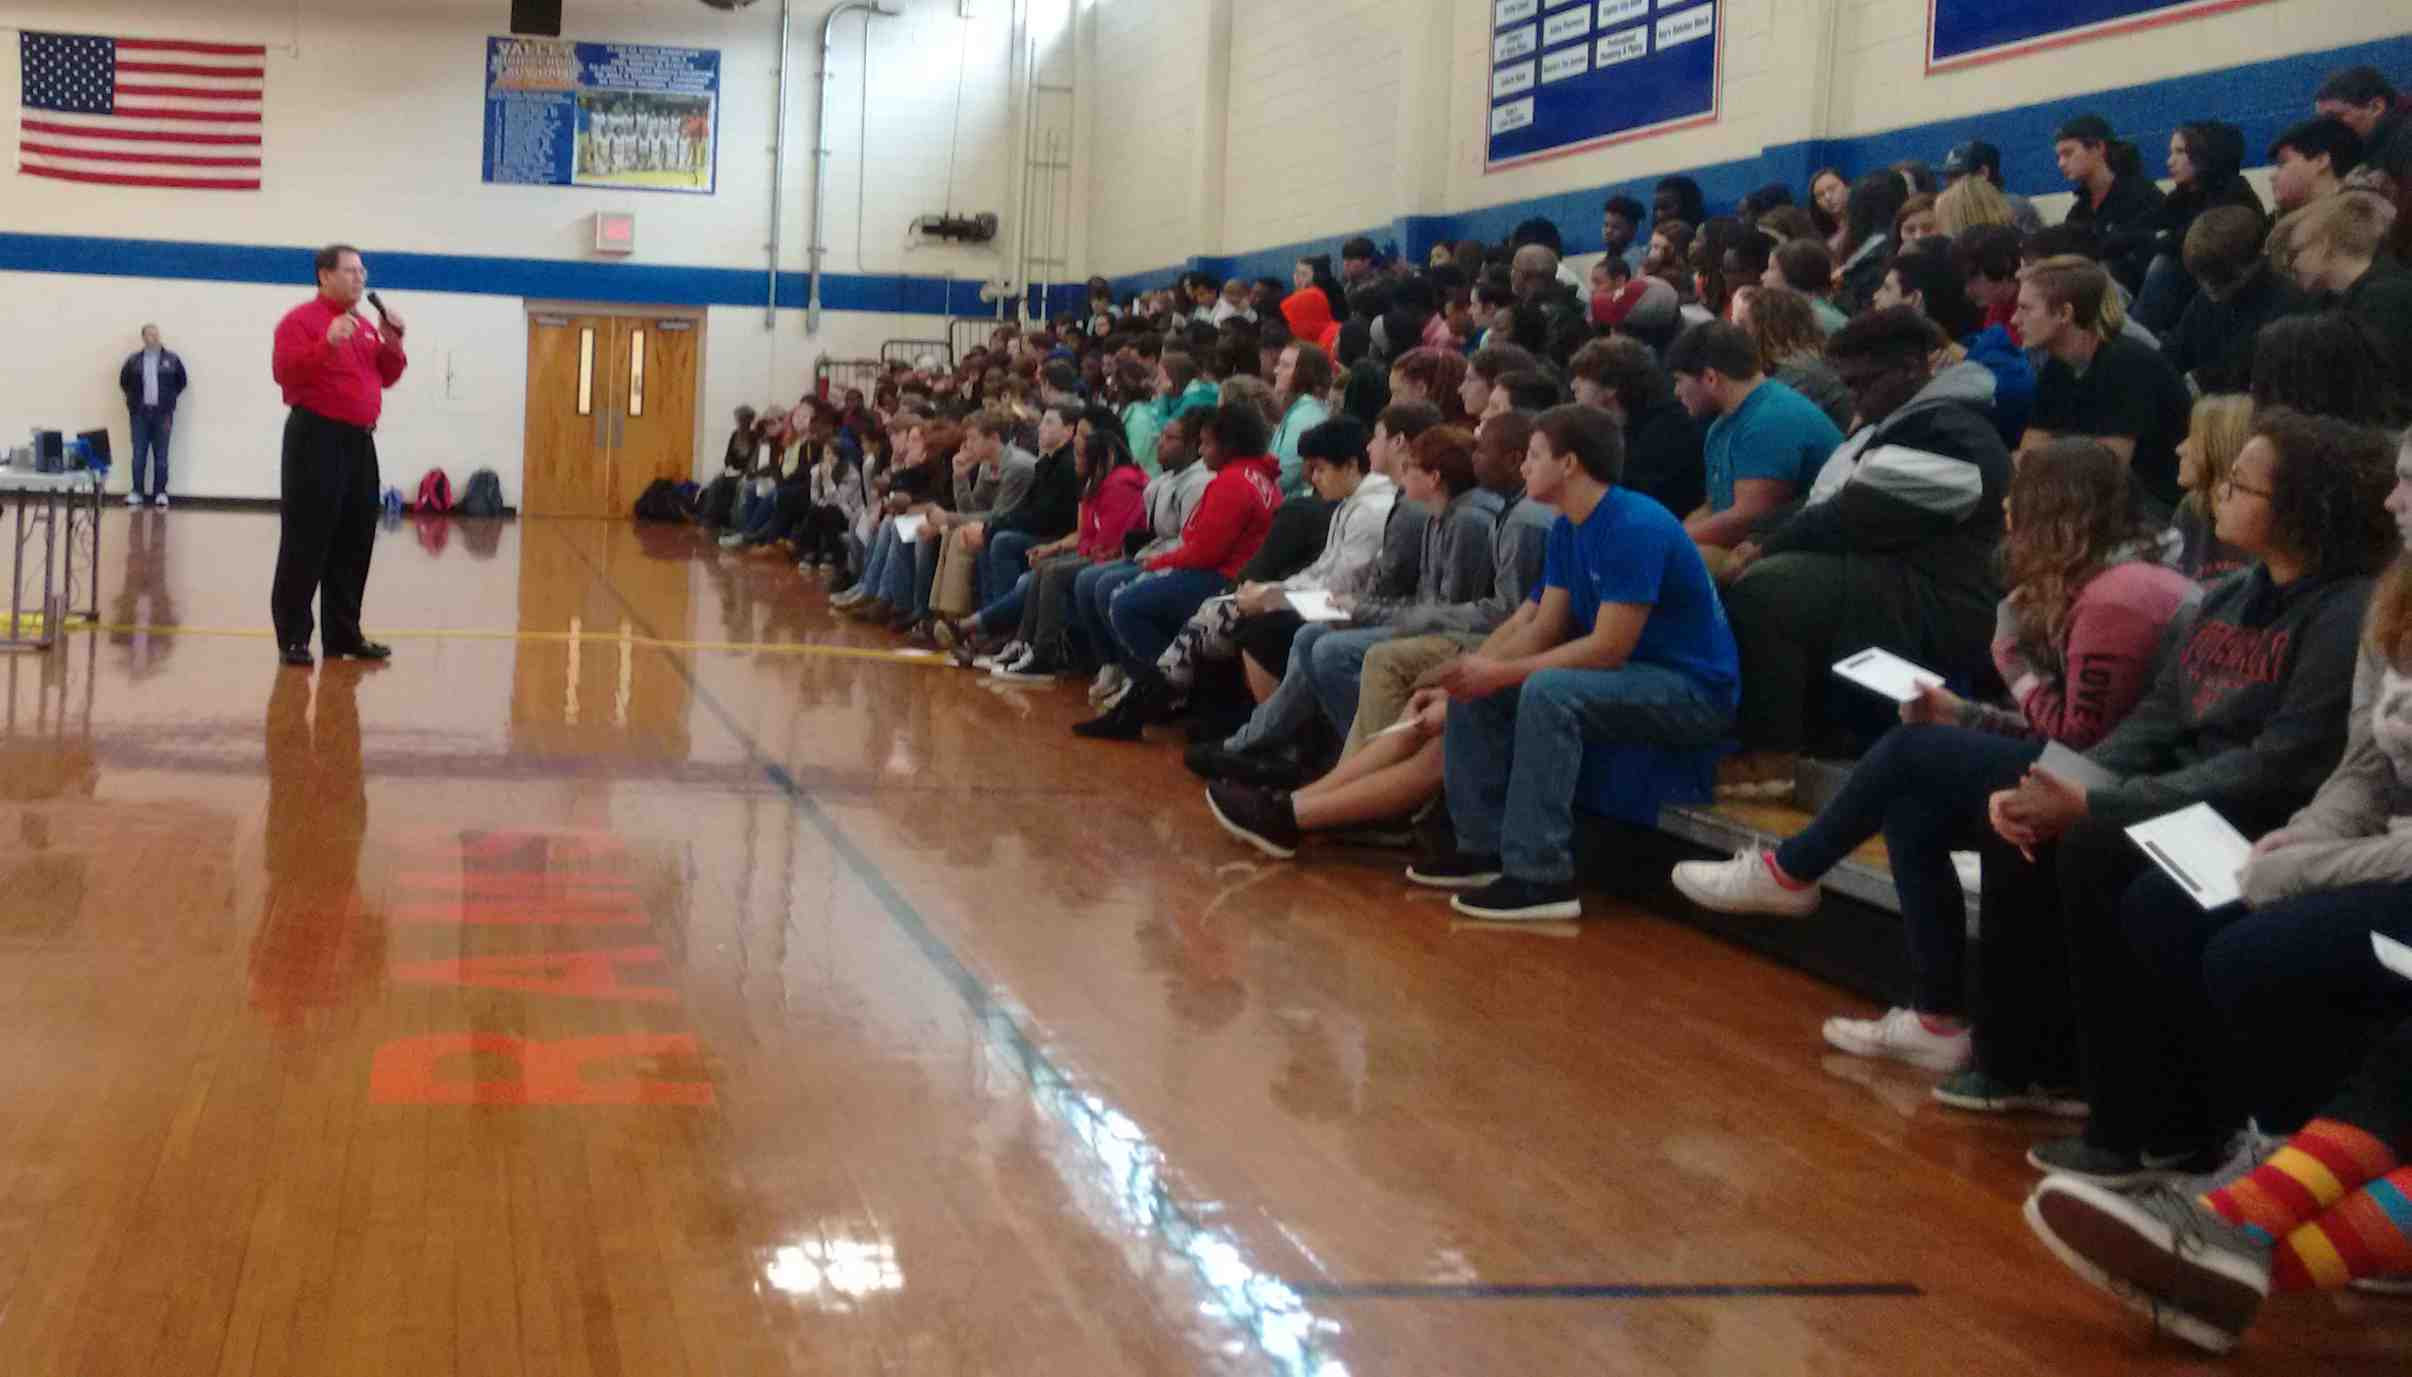 DANGERS OF UNDERAGE DRINKING SHARED WITH VALLEY HIGH SCHOOL STUDENTS